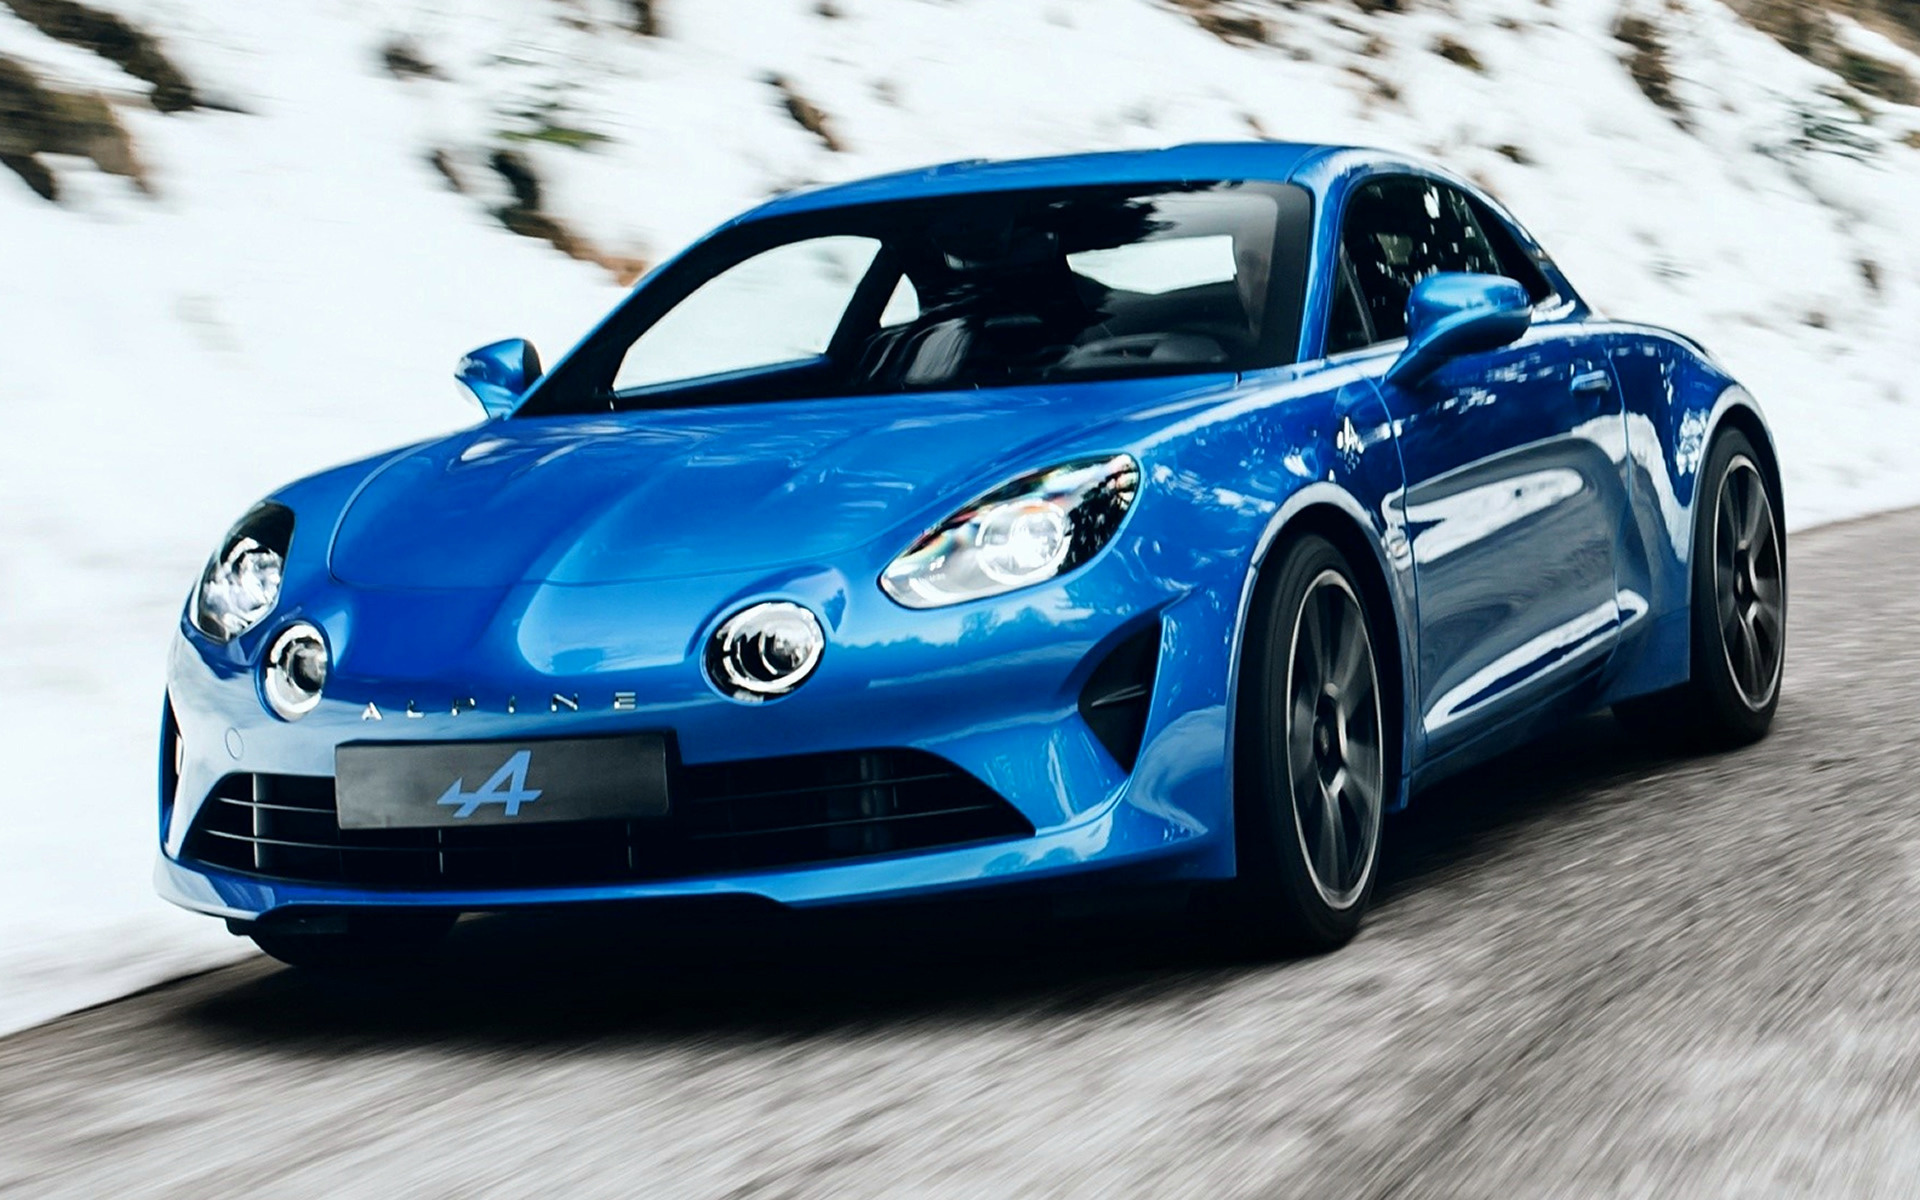 Genesis Car Wallpaper Alpine A110 Premiere Edition 2017 Wallpapers And Hd